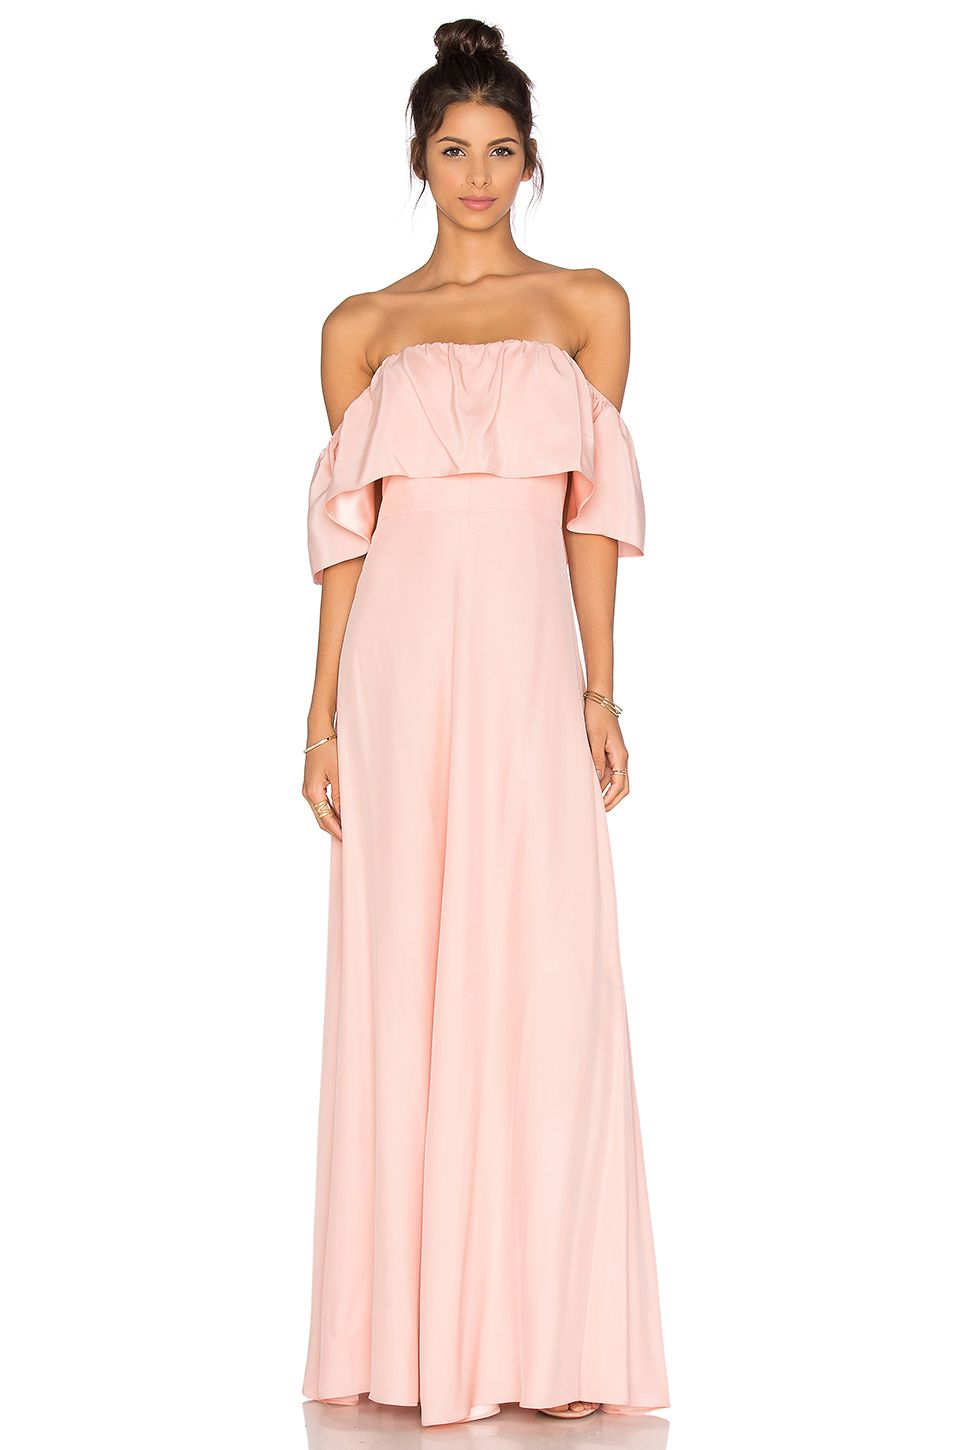 Amanda Uprichard Delilah Maxi Dress in Dusty Rose | vestidos de boda ...